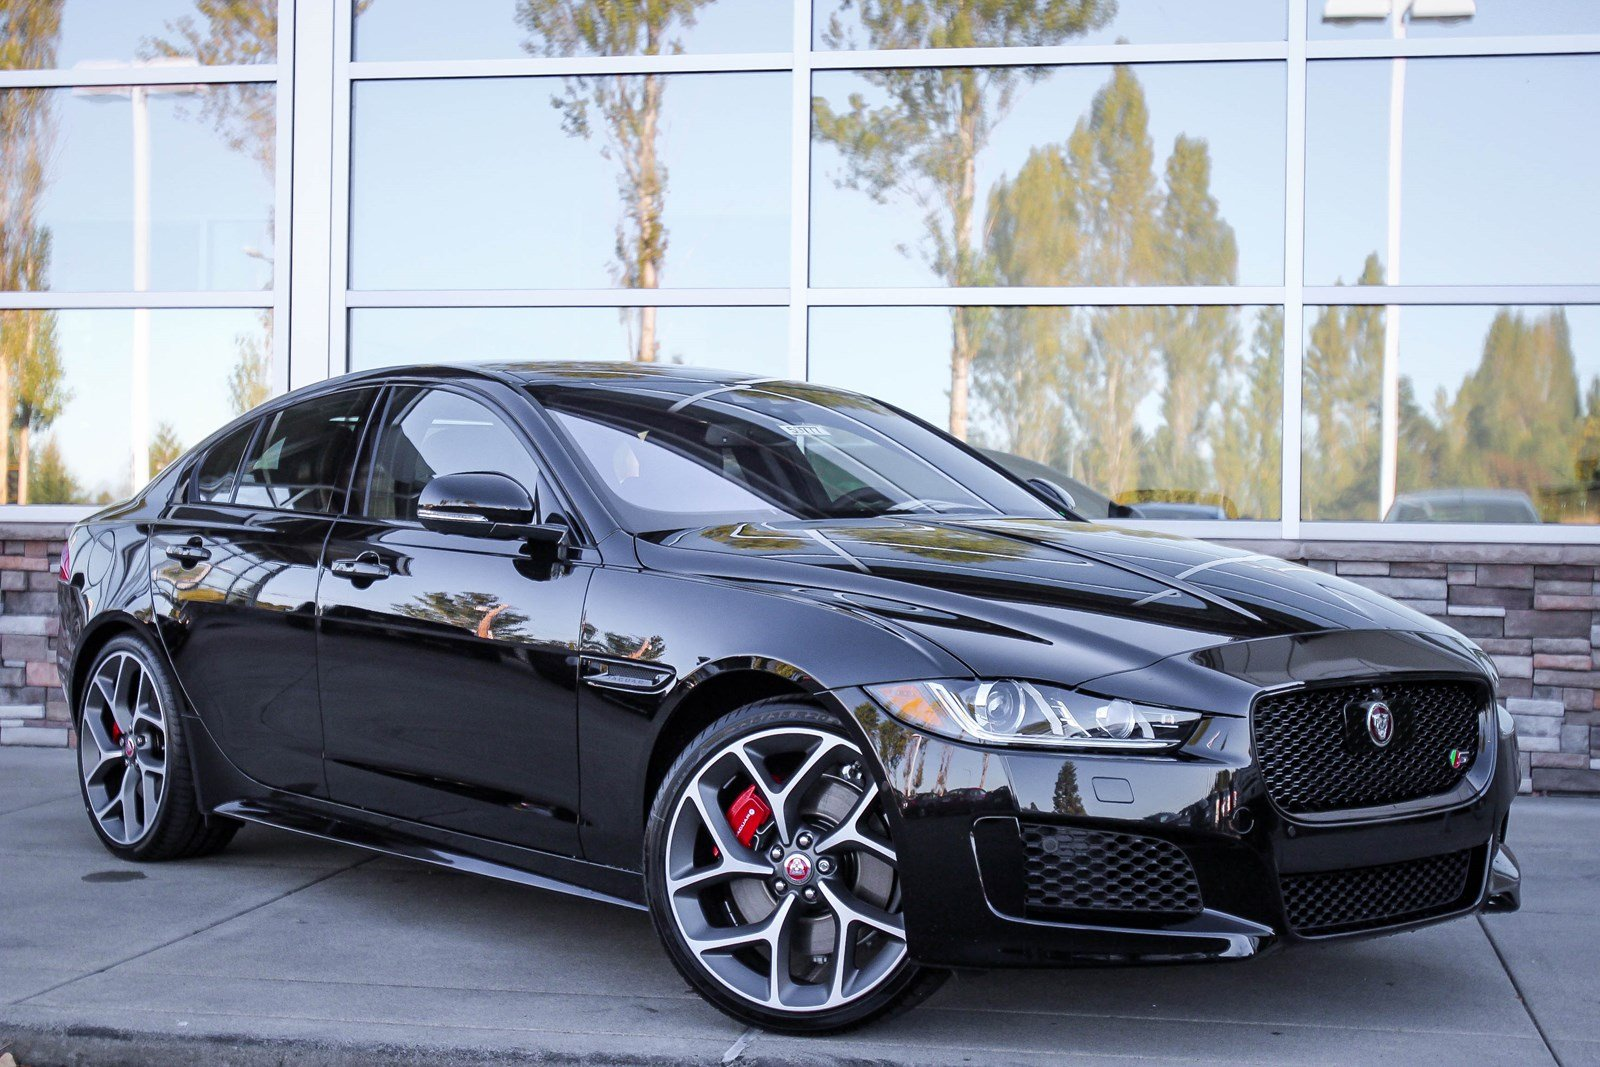 new 2018 jaguar xe s 4dr car in bellevue 59777 jaguar bellevue. Black Bedroom Furniture Sets. Home Design Ideas